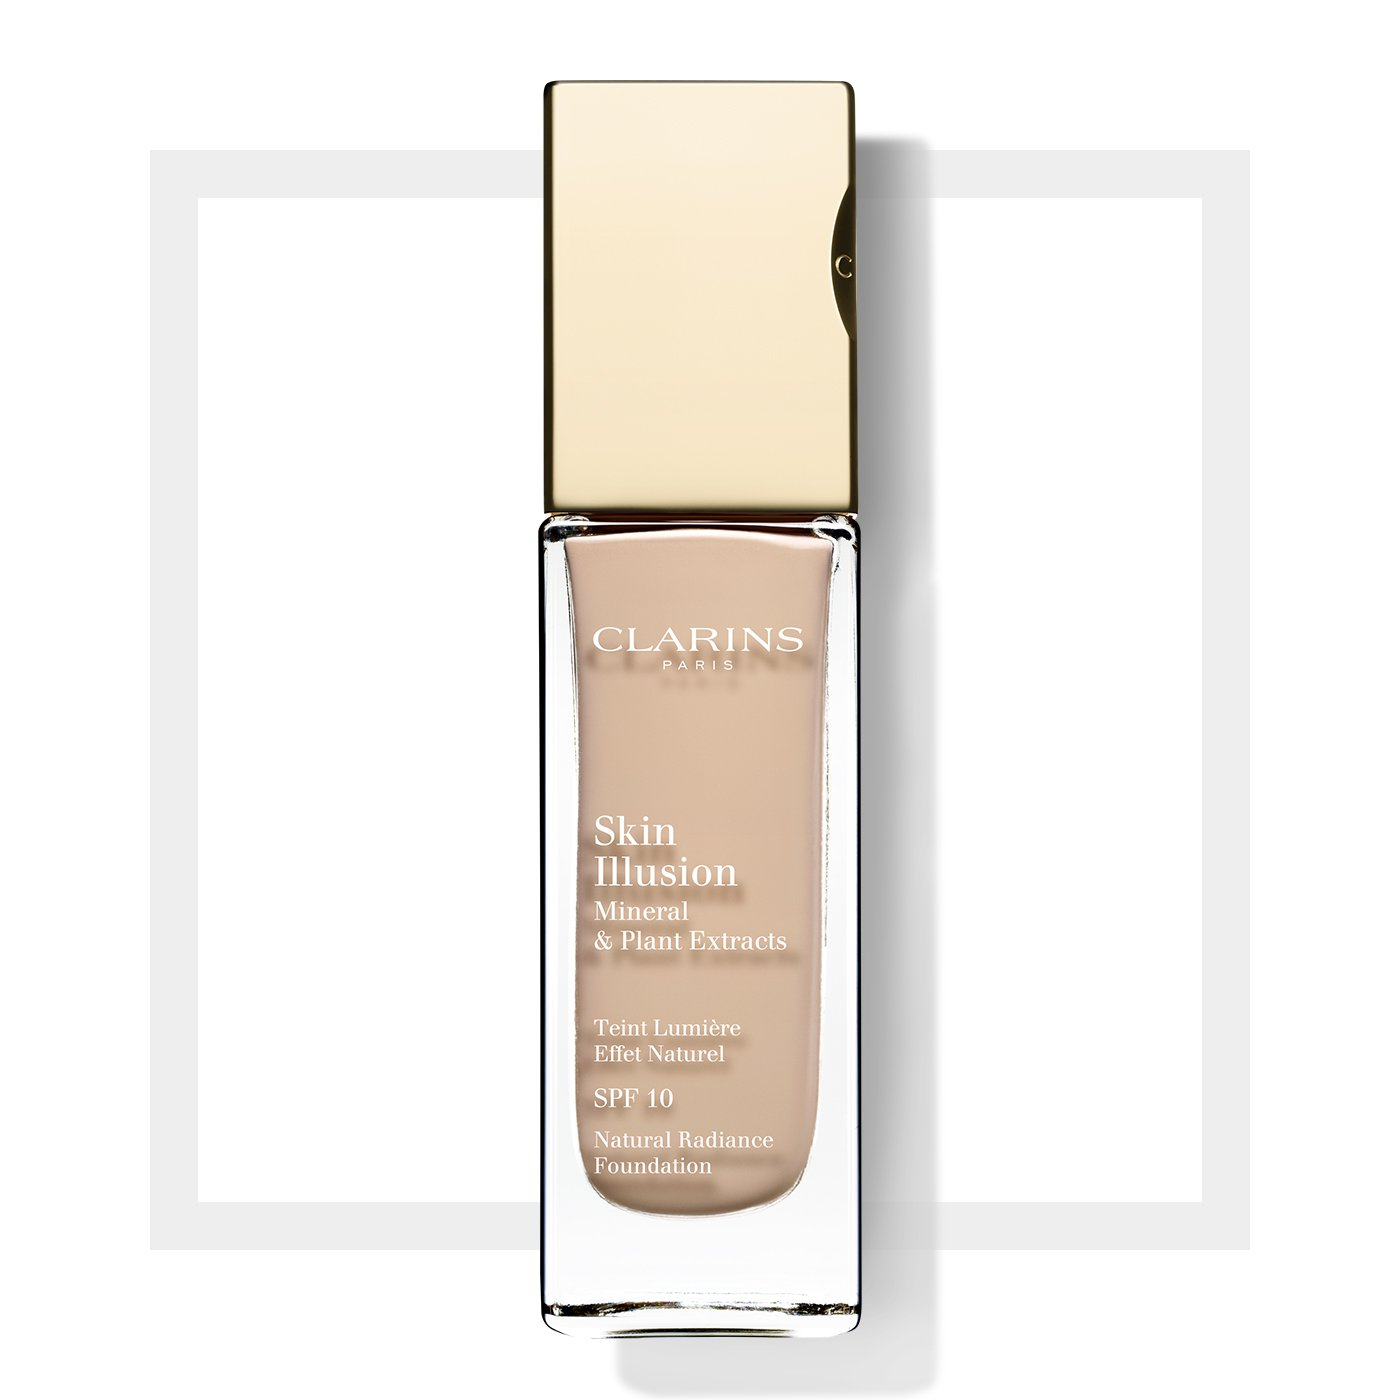 skin-illusion-natural-radiance-light-reflecting-foundation-spf-10-C050101009 (1)